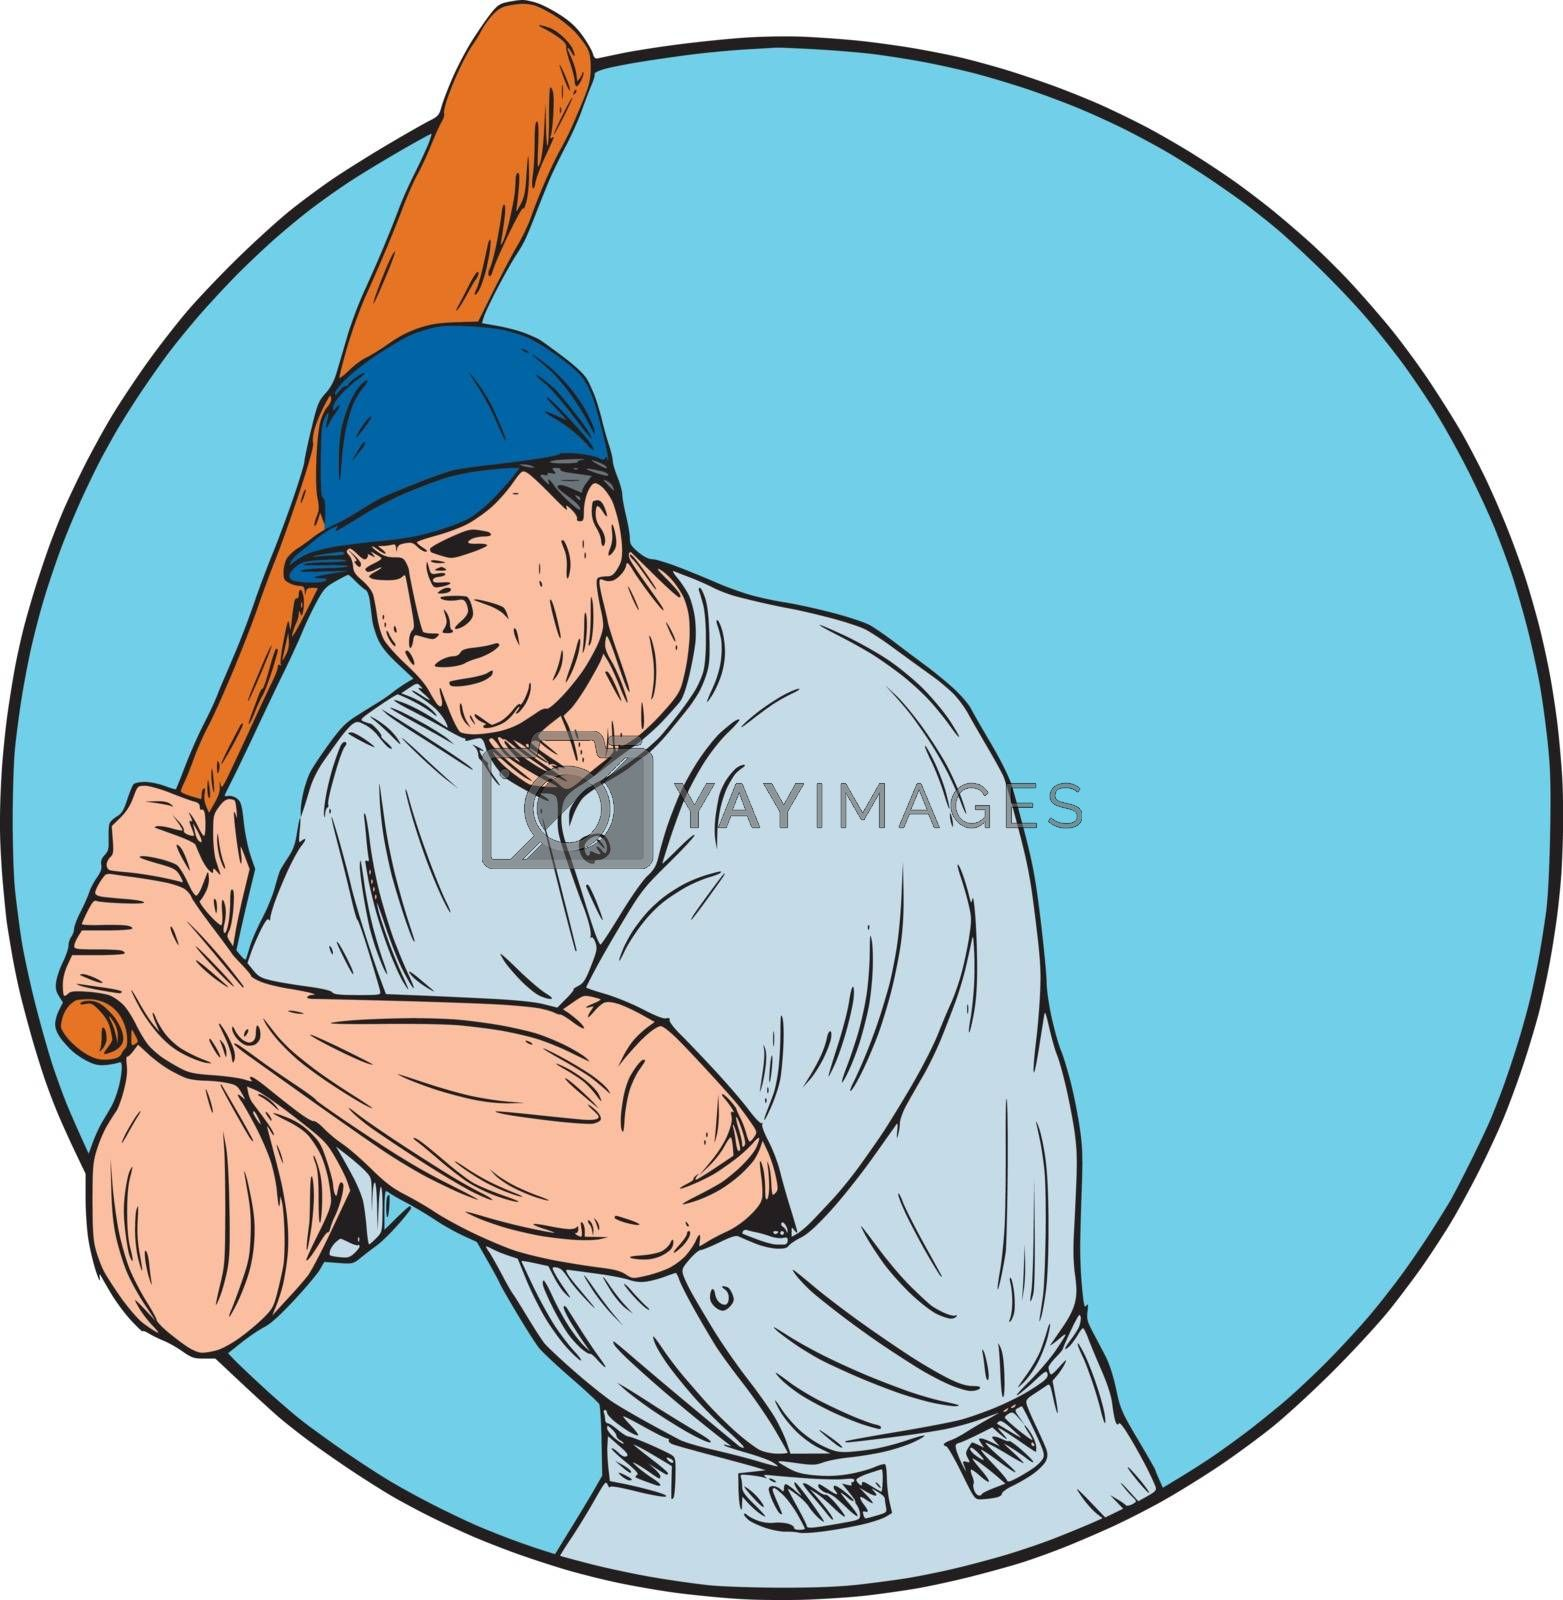 Drawing sketch style illustration of an american baseball player batter hitter holding bat viewed from front set inside circle.